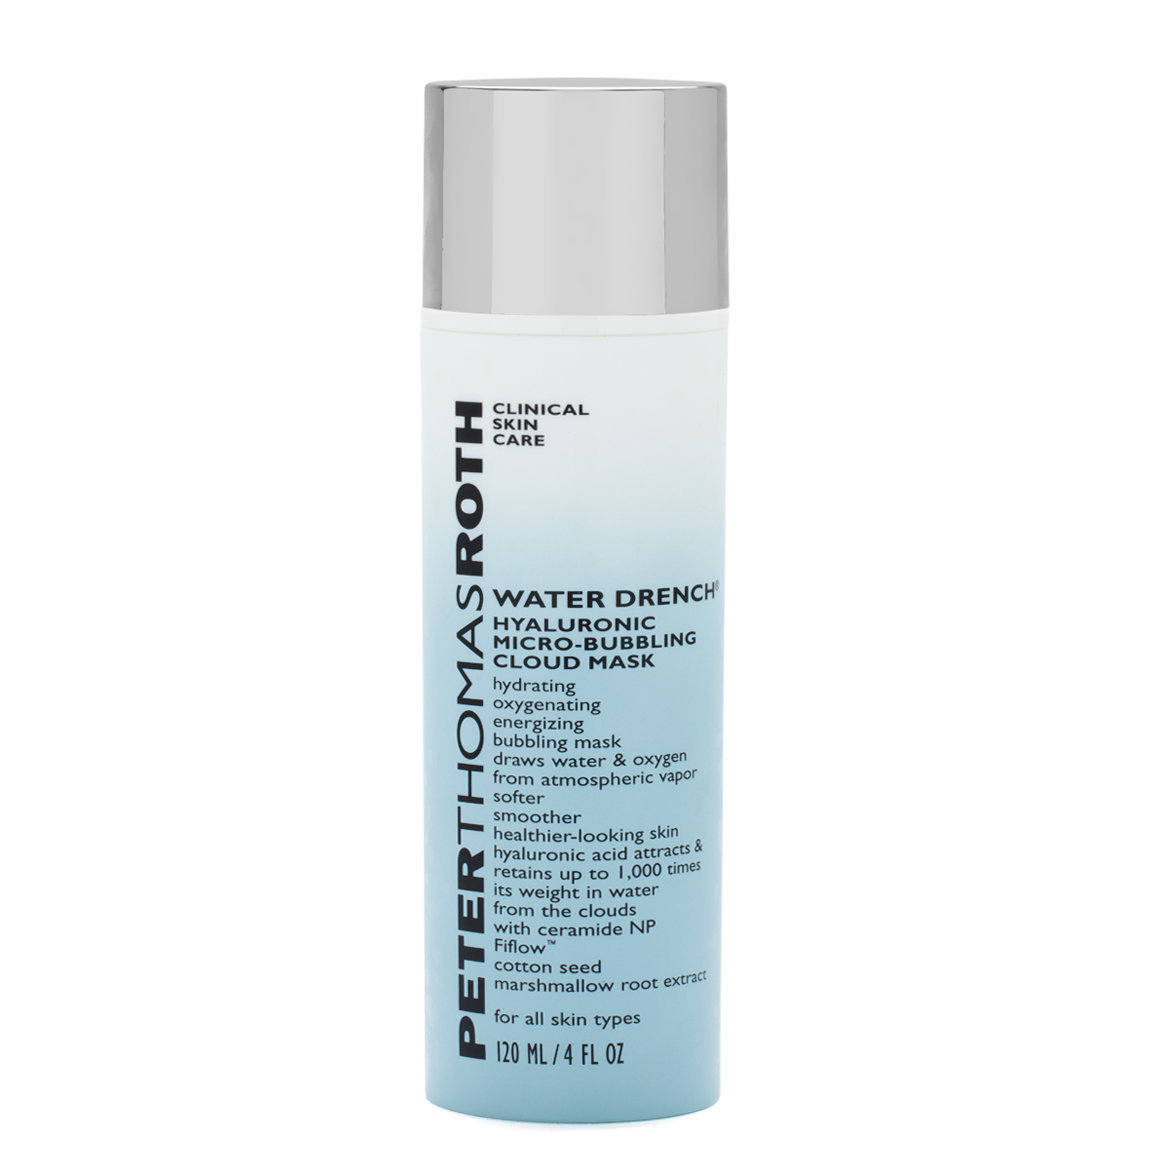 Peter Thomas Roth Water Drench Hyaluronic Micro-Bubbling Cloud Mask product smear.